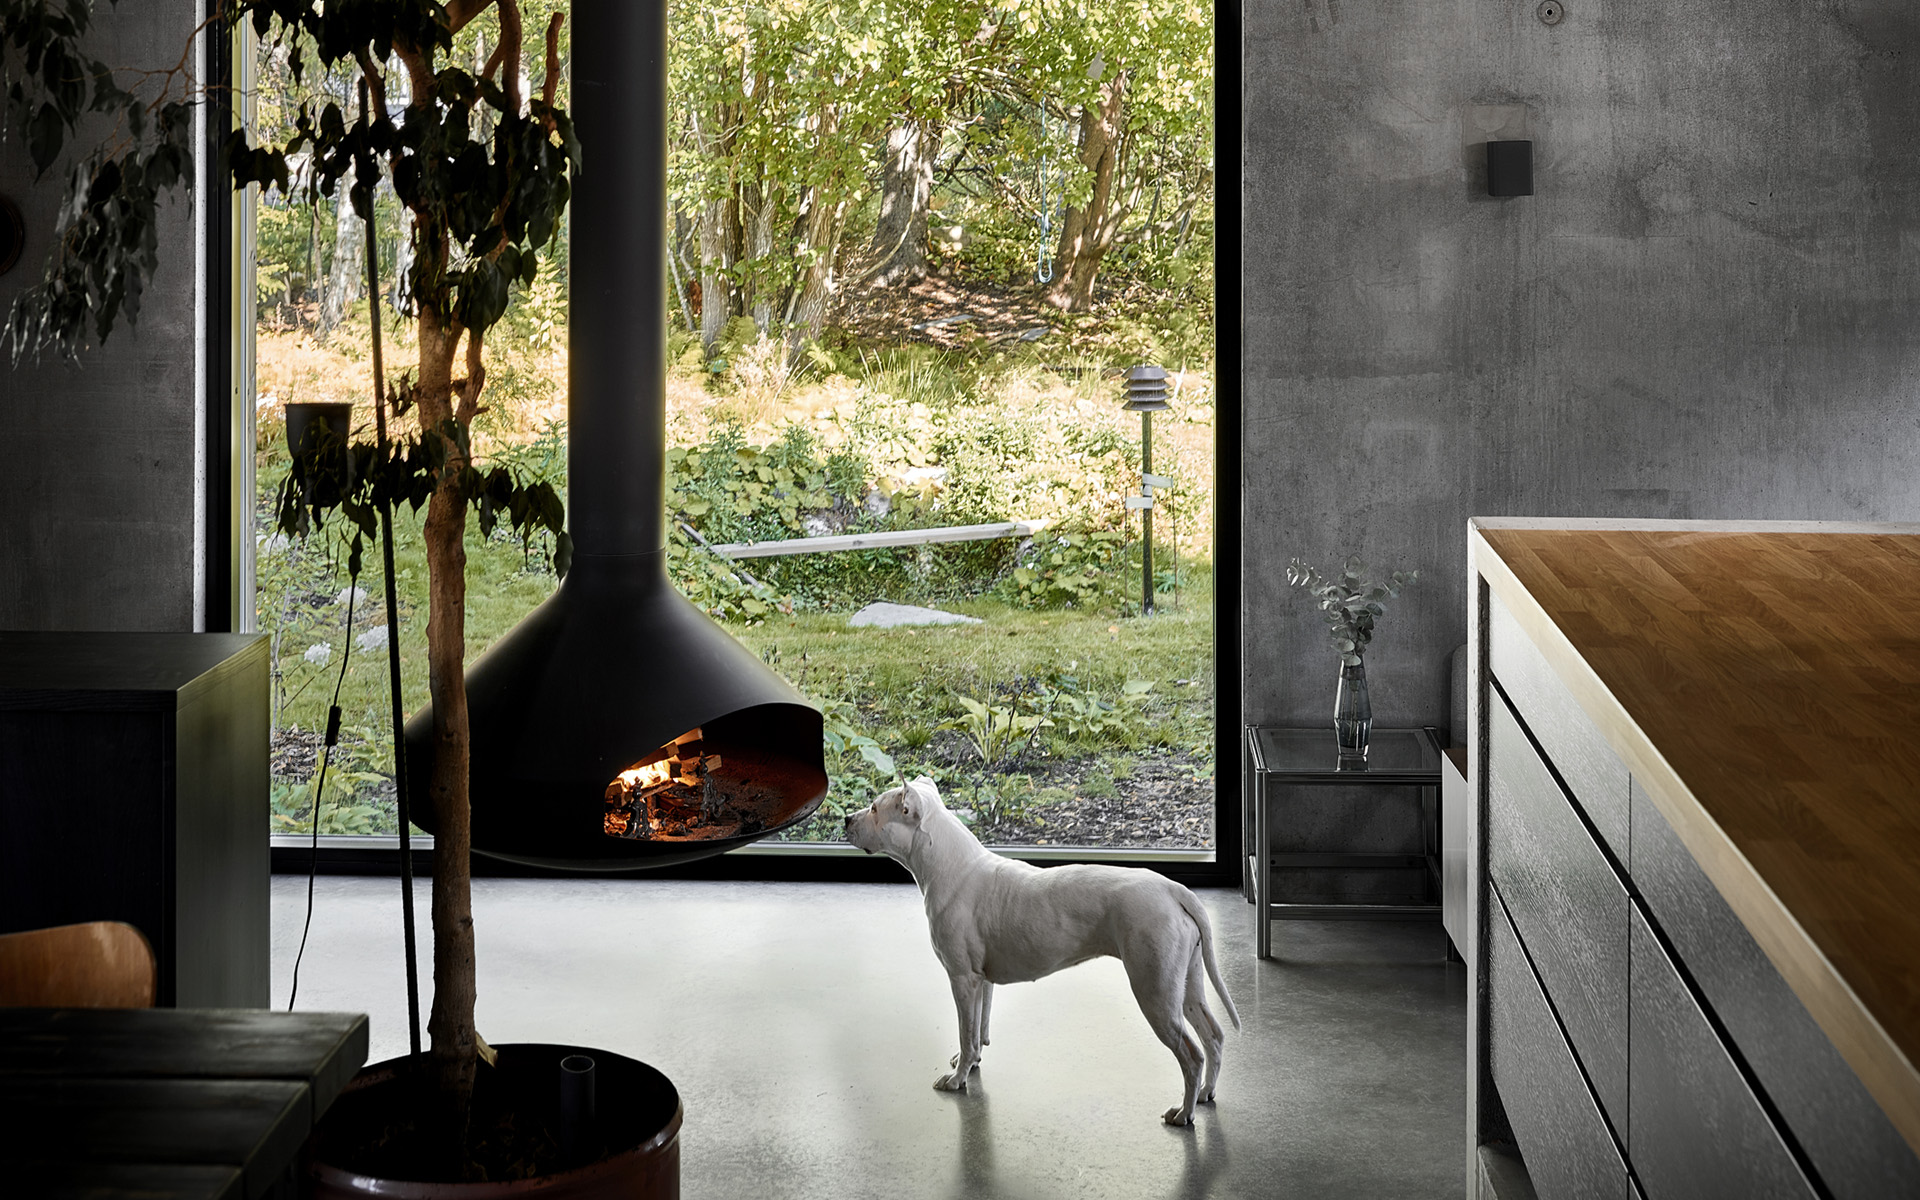 Photo of a dog and a fireplace in front of a window